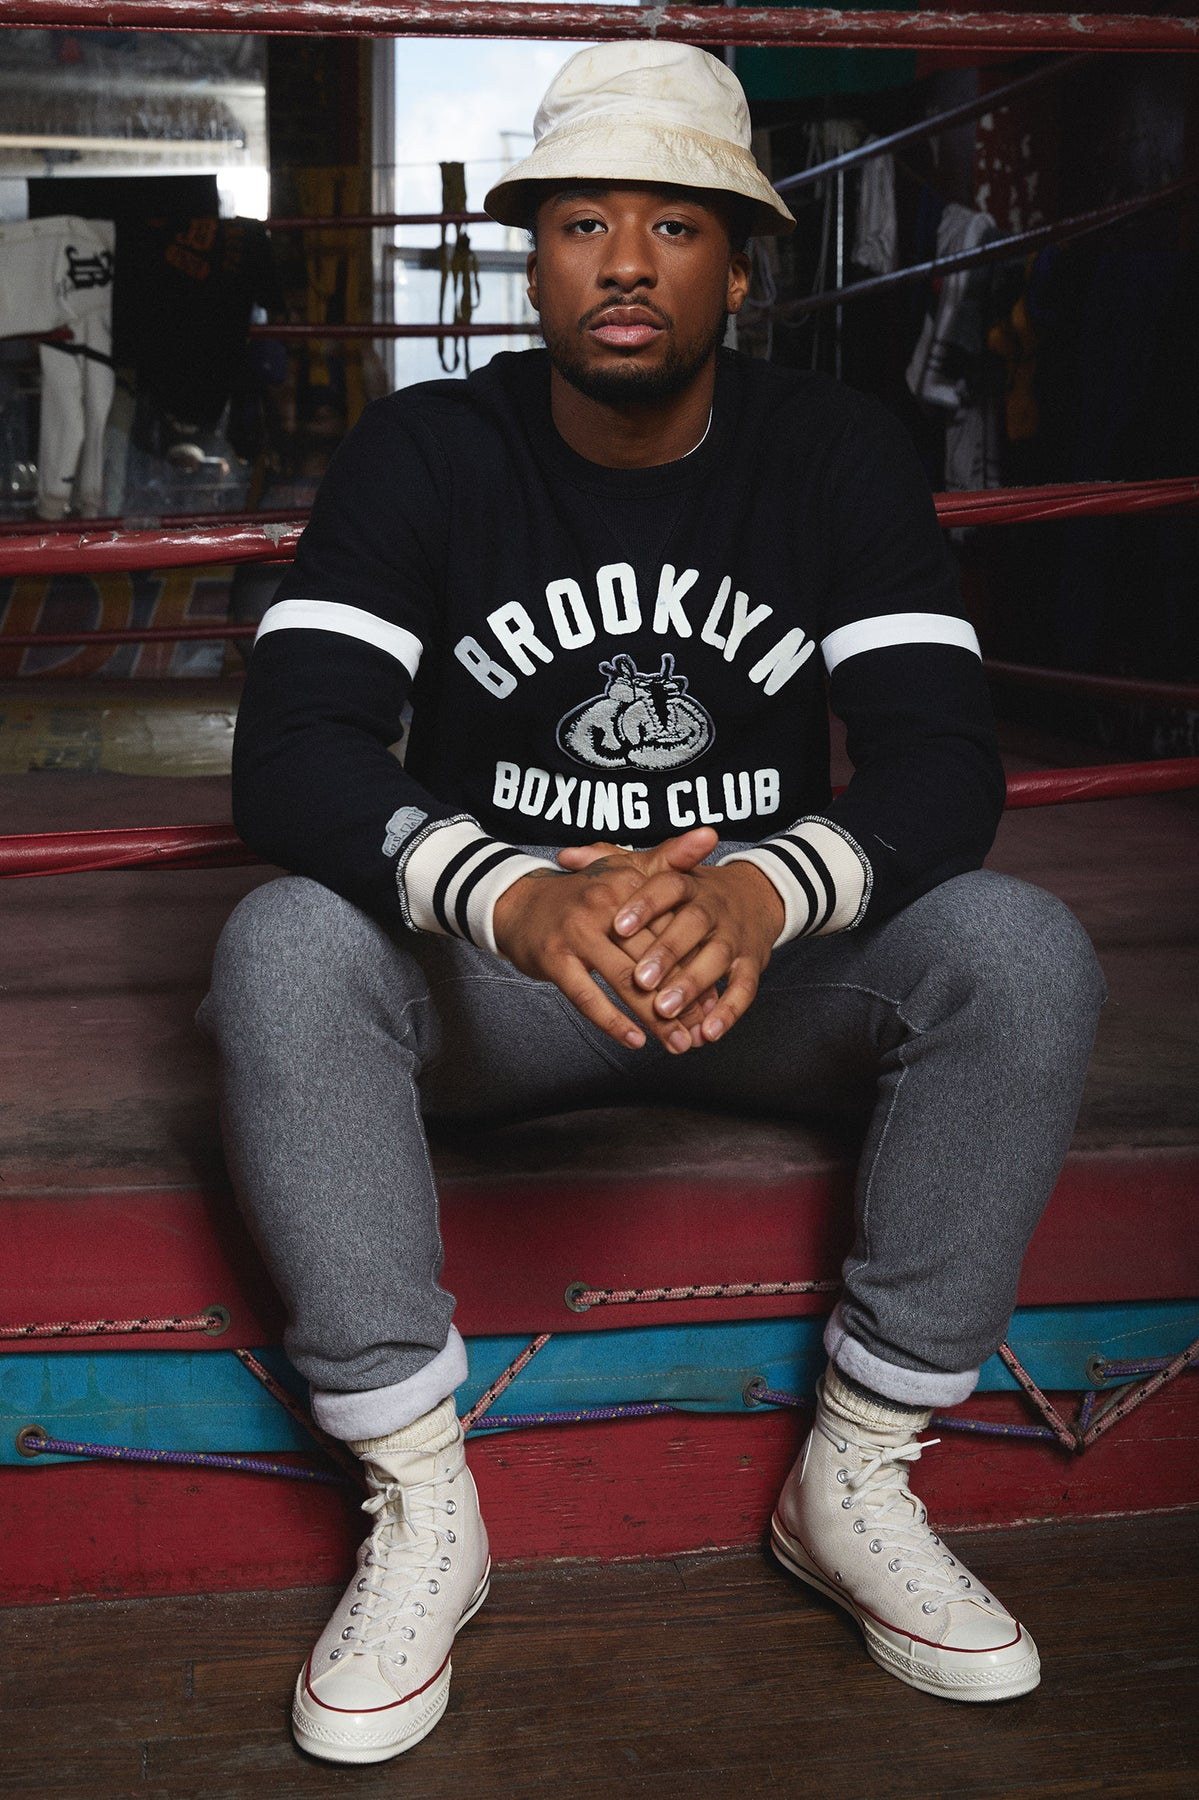 TS x Champion The Brooklyn Circus Boxing Sweatshirt